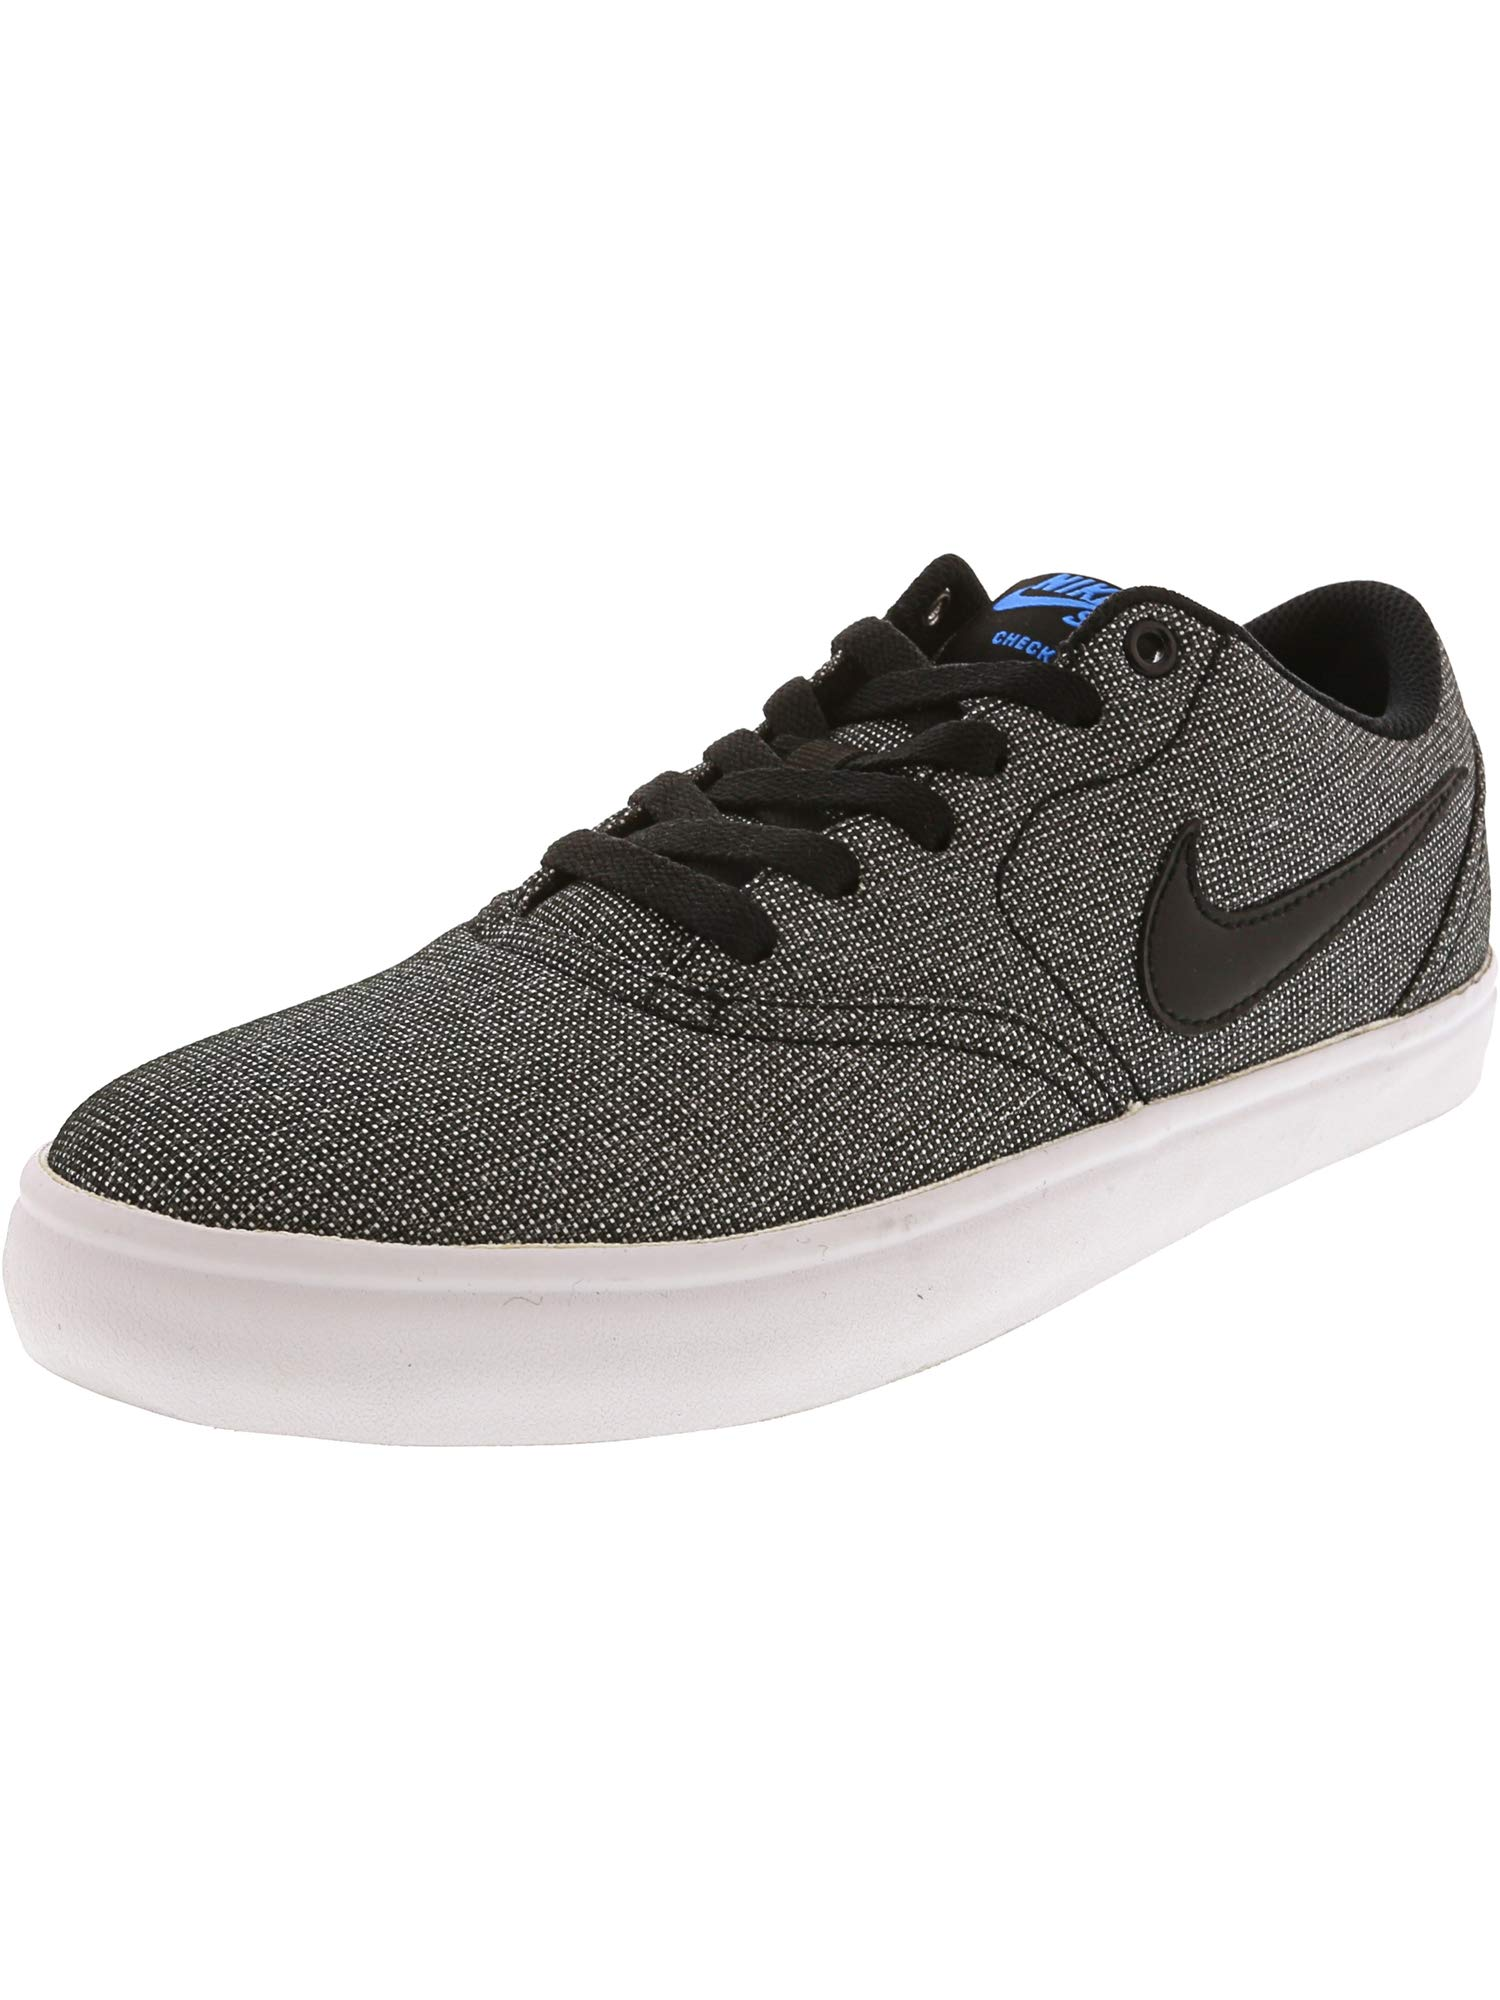 best service d22f5 7811f Galleon - Nike Men s SB Check Solar Canvas Skate Shoe, Grey Black Photo  Blue Black, 7.5 M US